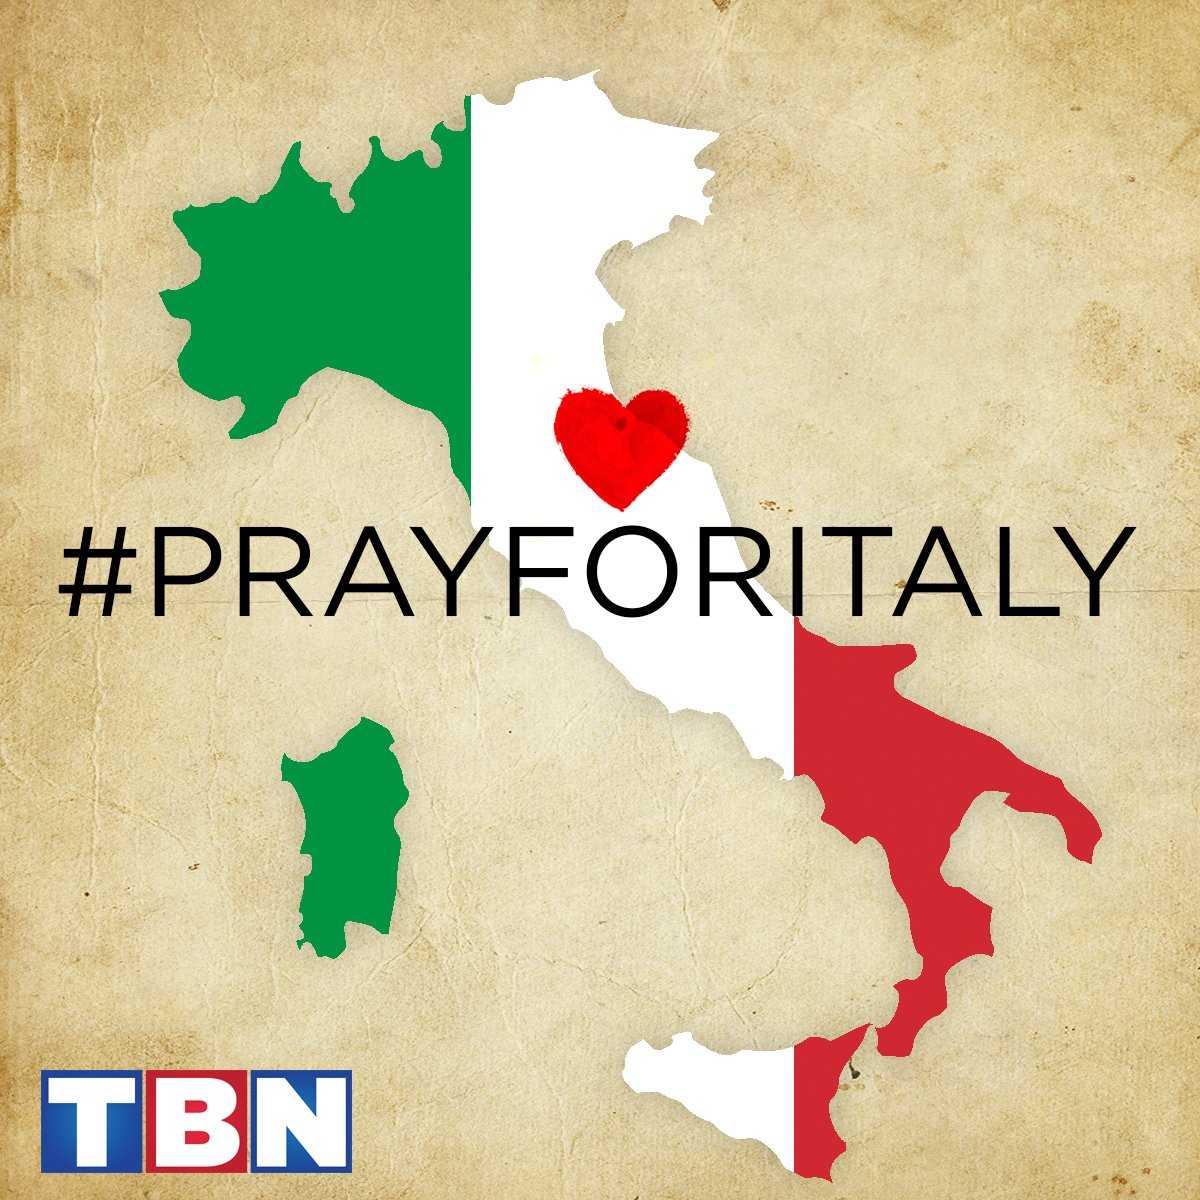 Pray w/ us for those devastated by the earthquake in Italy. Over 120 dead, many hurting & homeless. #PrayForItaly https://t.co/2zxx0sXxtT